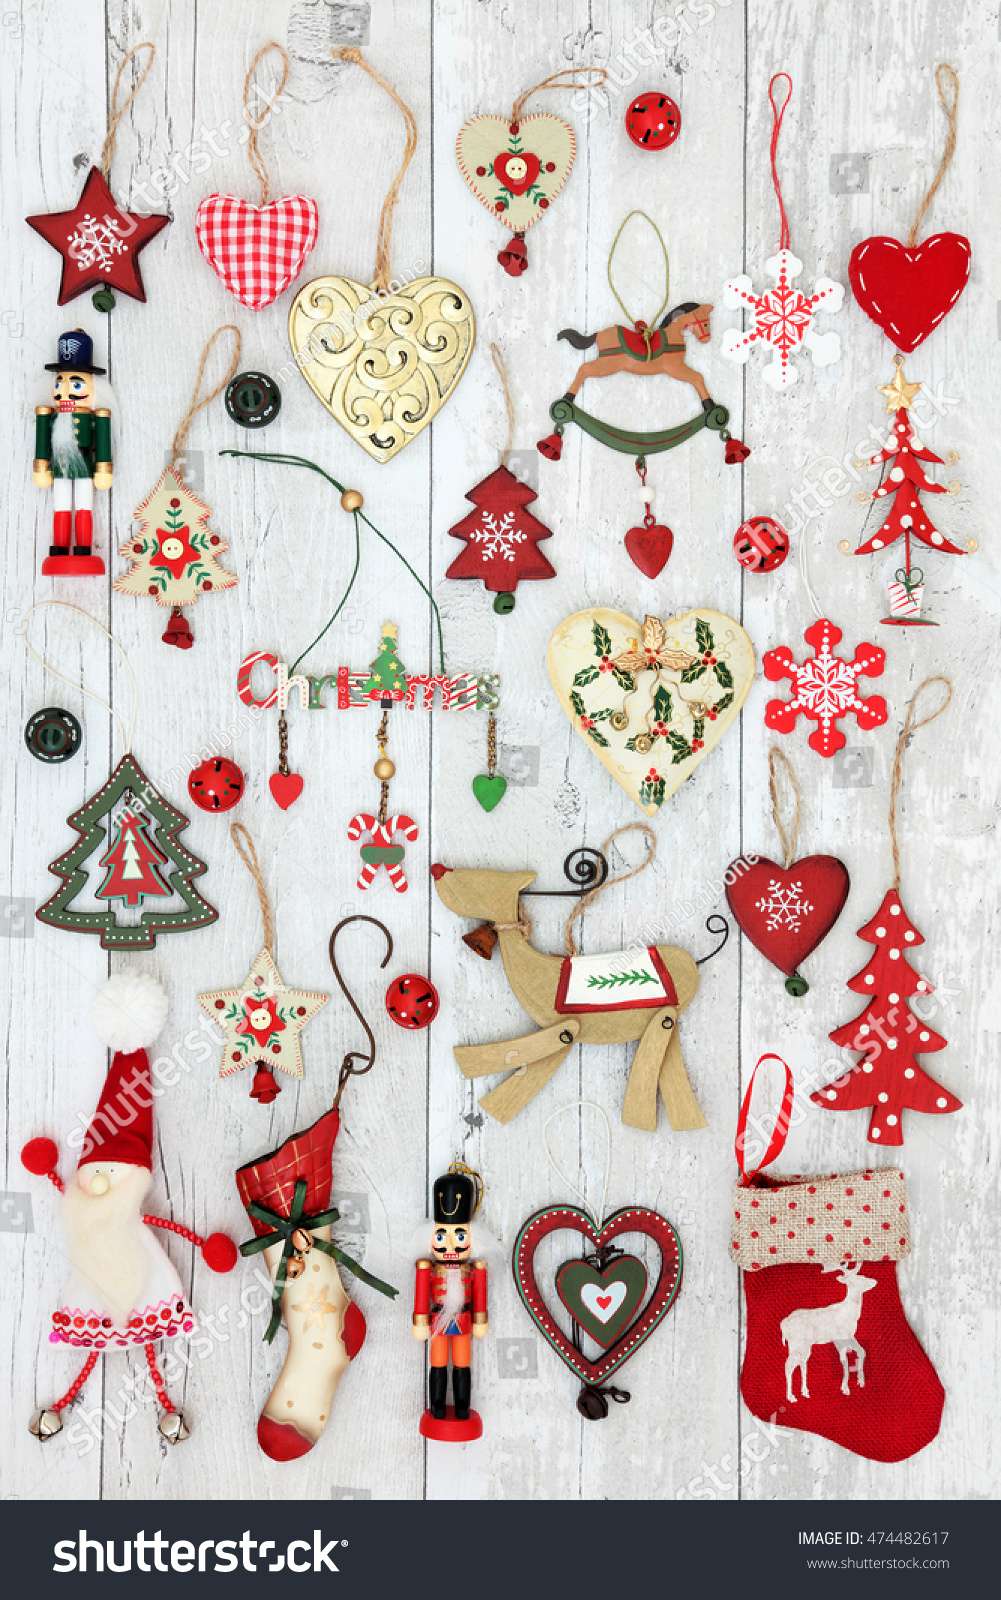 Old Fashioned Christmas Tree Decorations Baubles Stock Photo (Edit ...